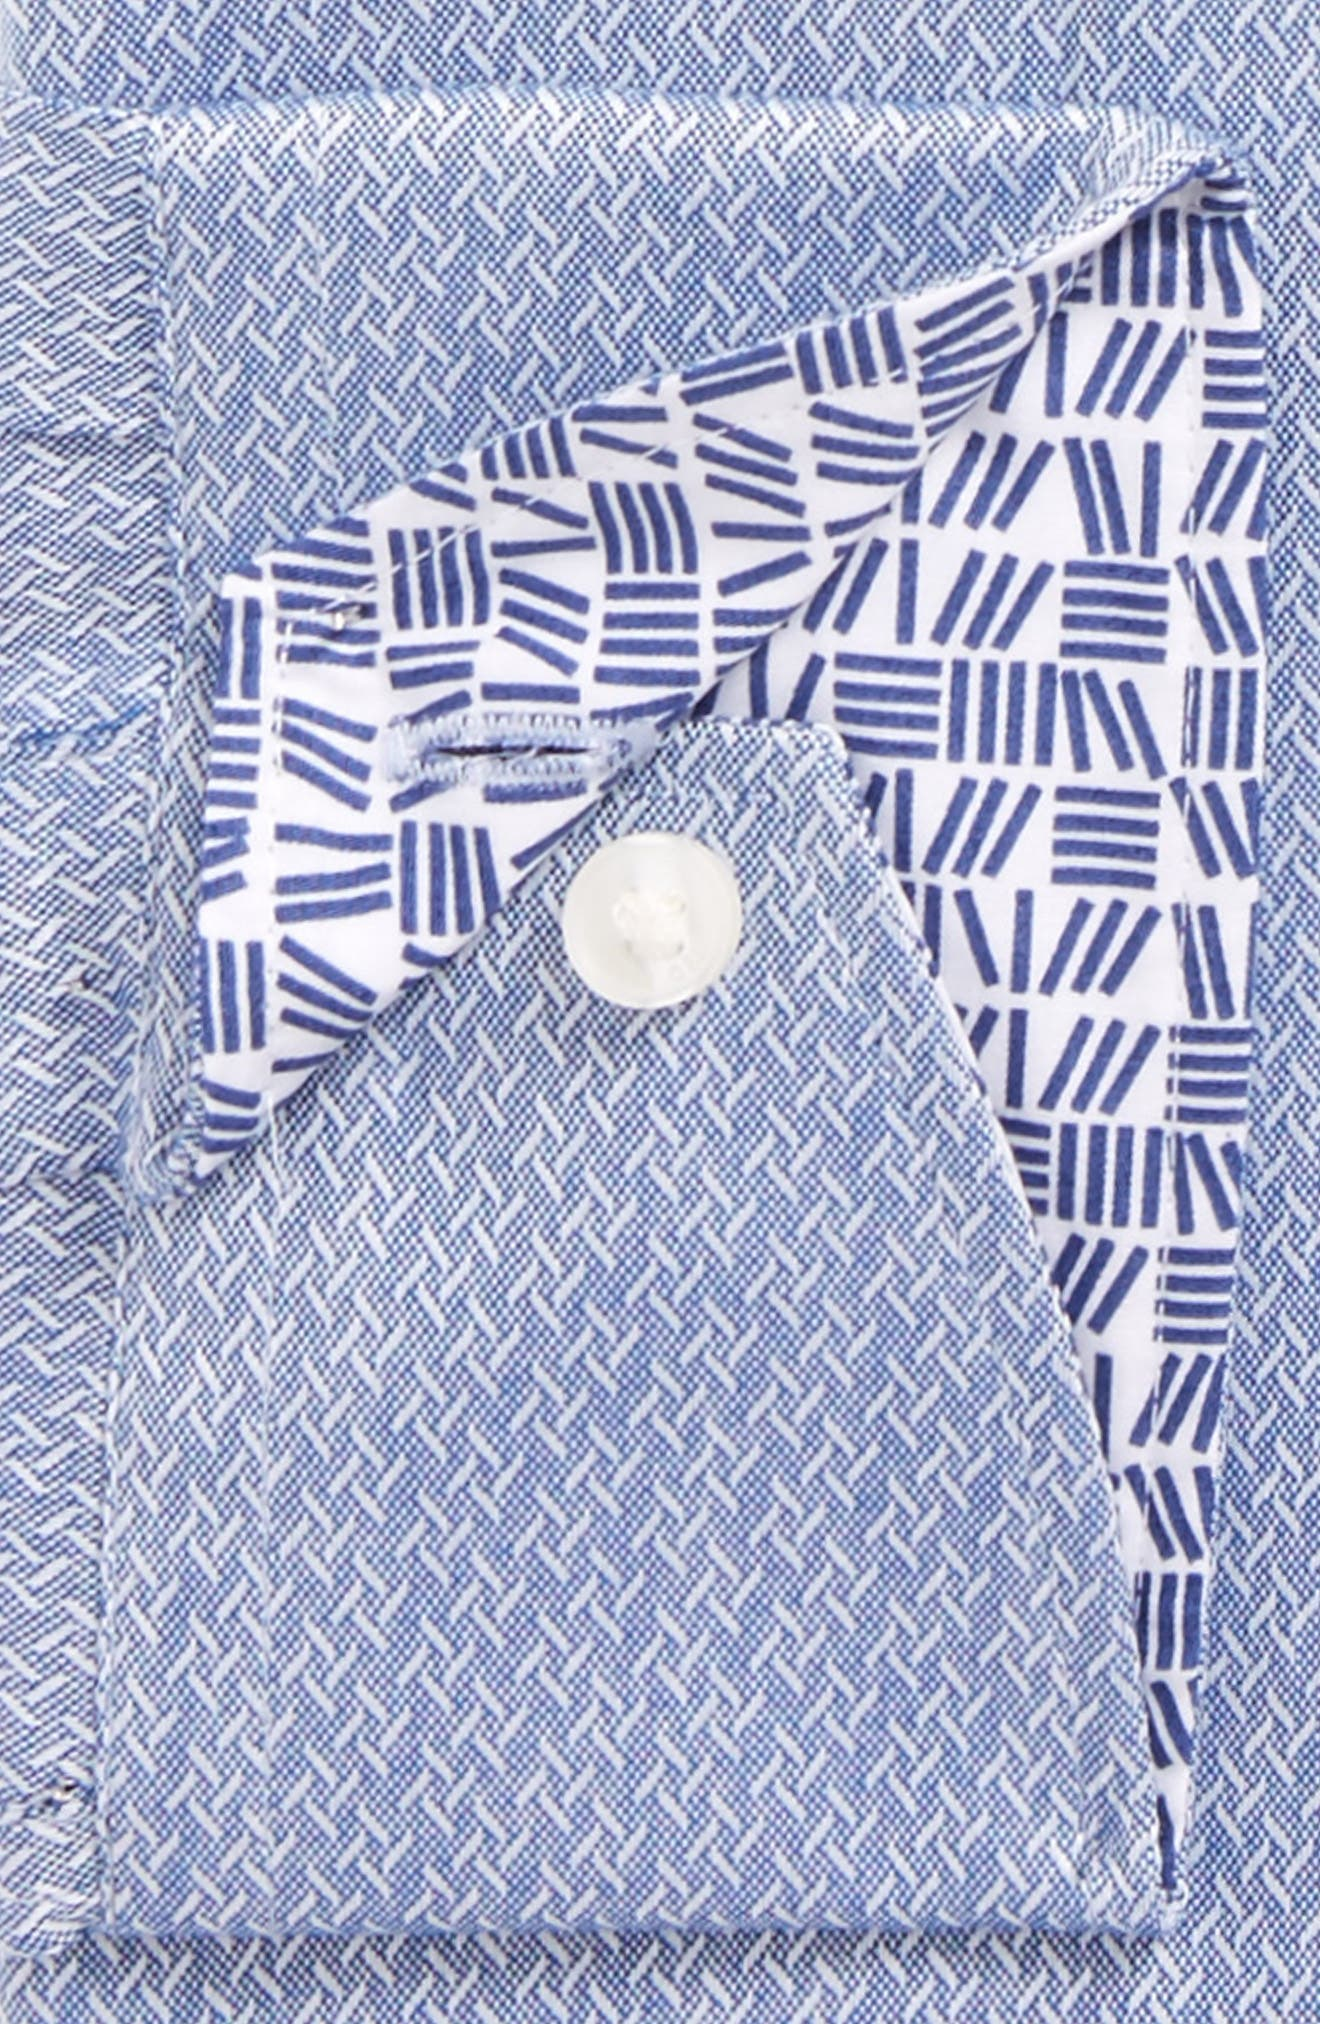 Endurance Driss Slim Fit Geometric Oxford Dress Shirt,                             Alternate thumbnail 2, color,                             NAVY